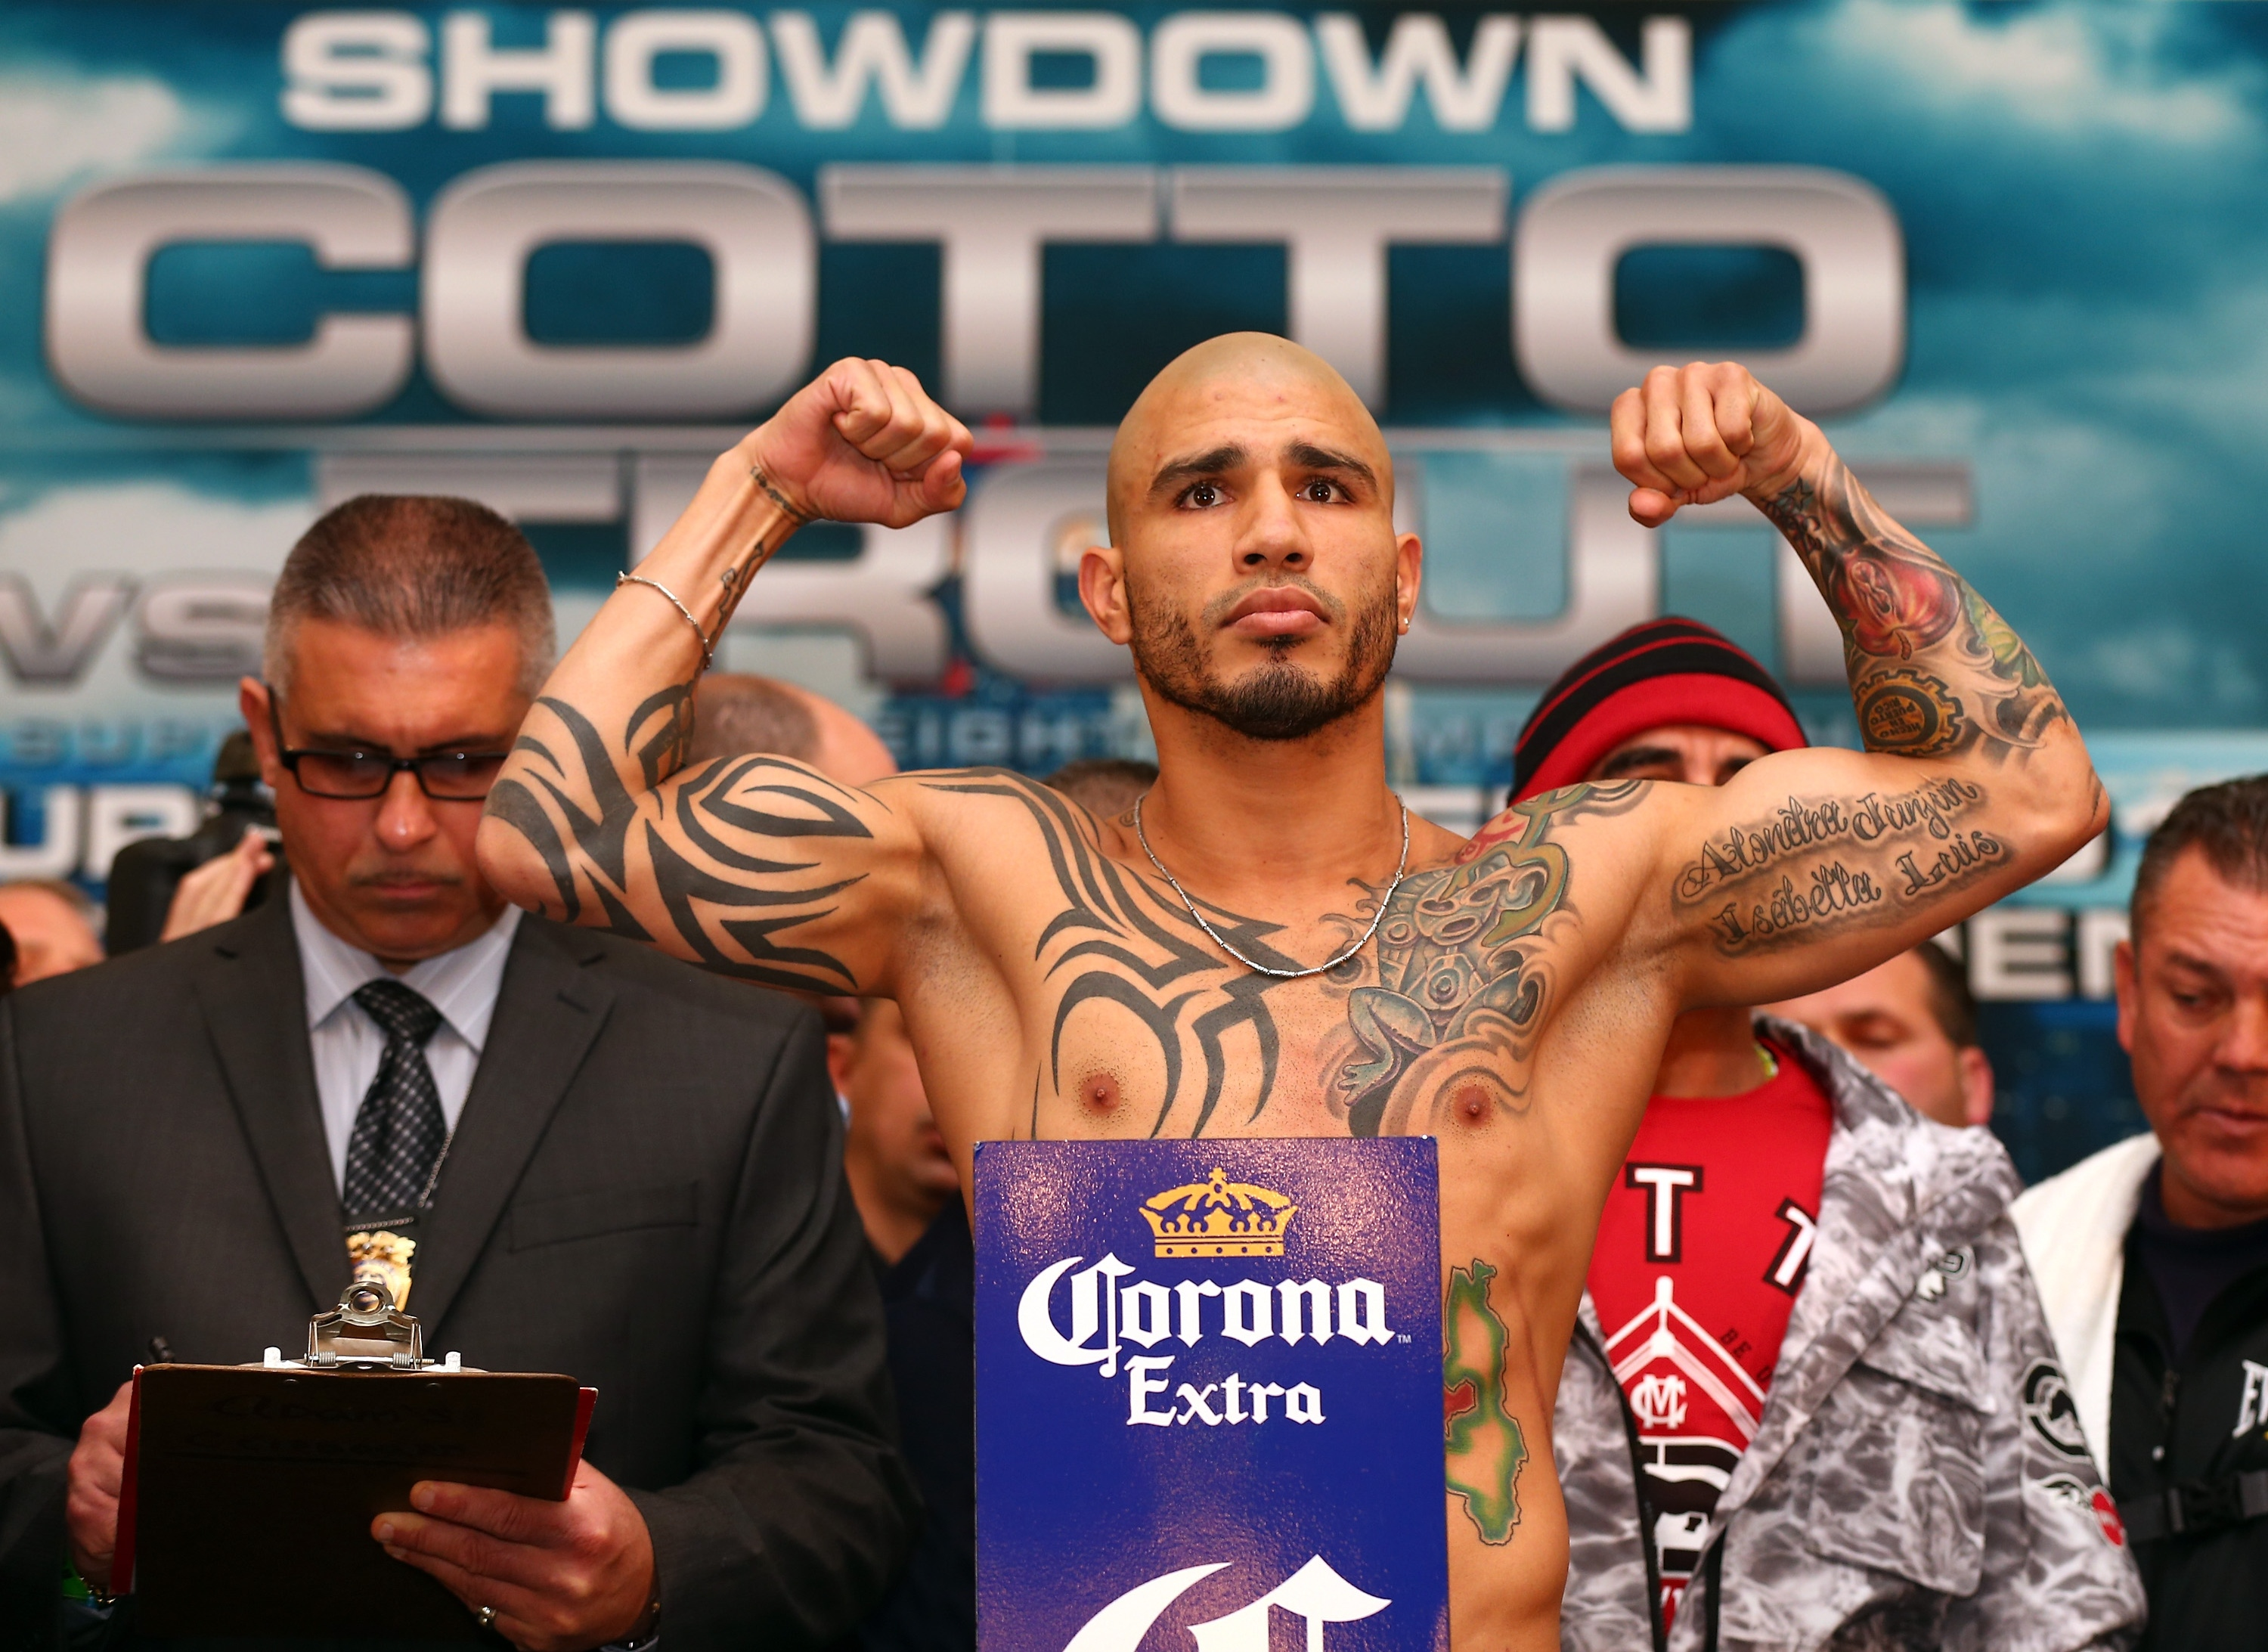 Miguel Cotto poses during the weigh-in for his fight against Austin Trout. (Getty Images)